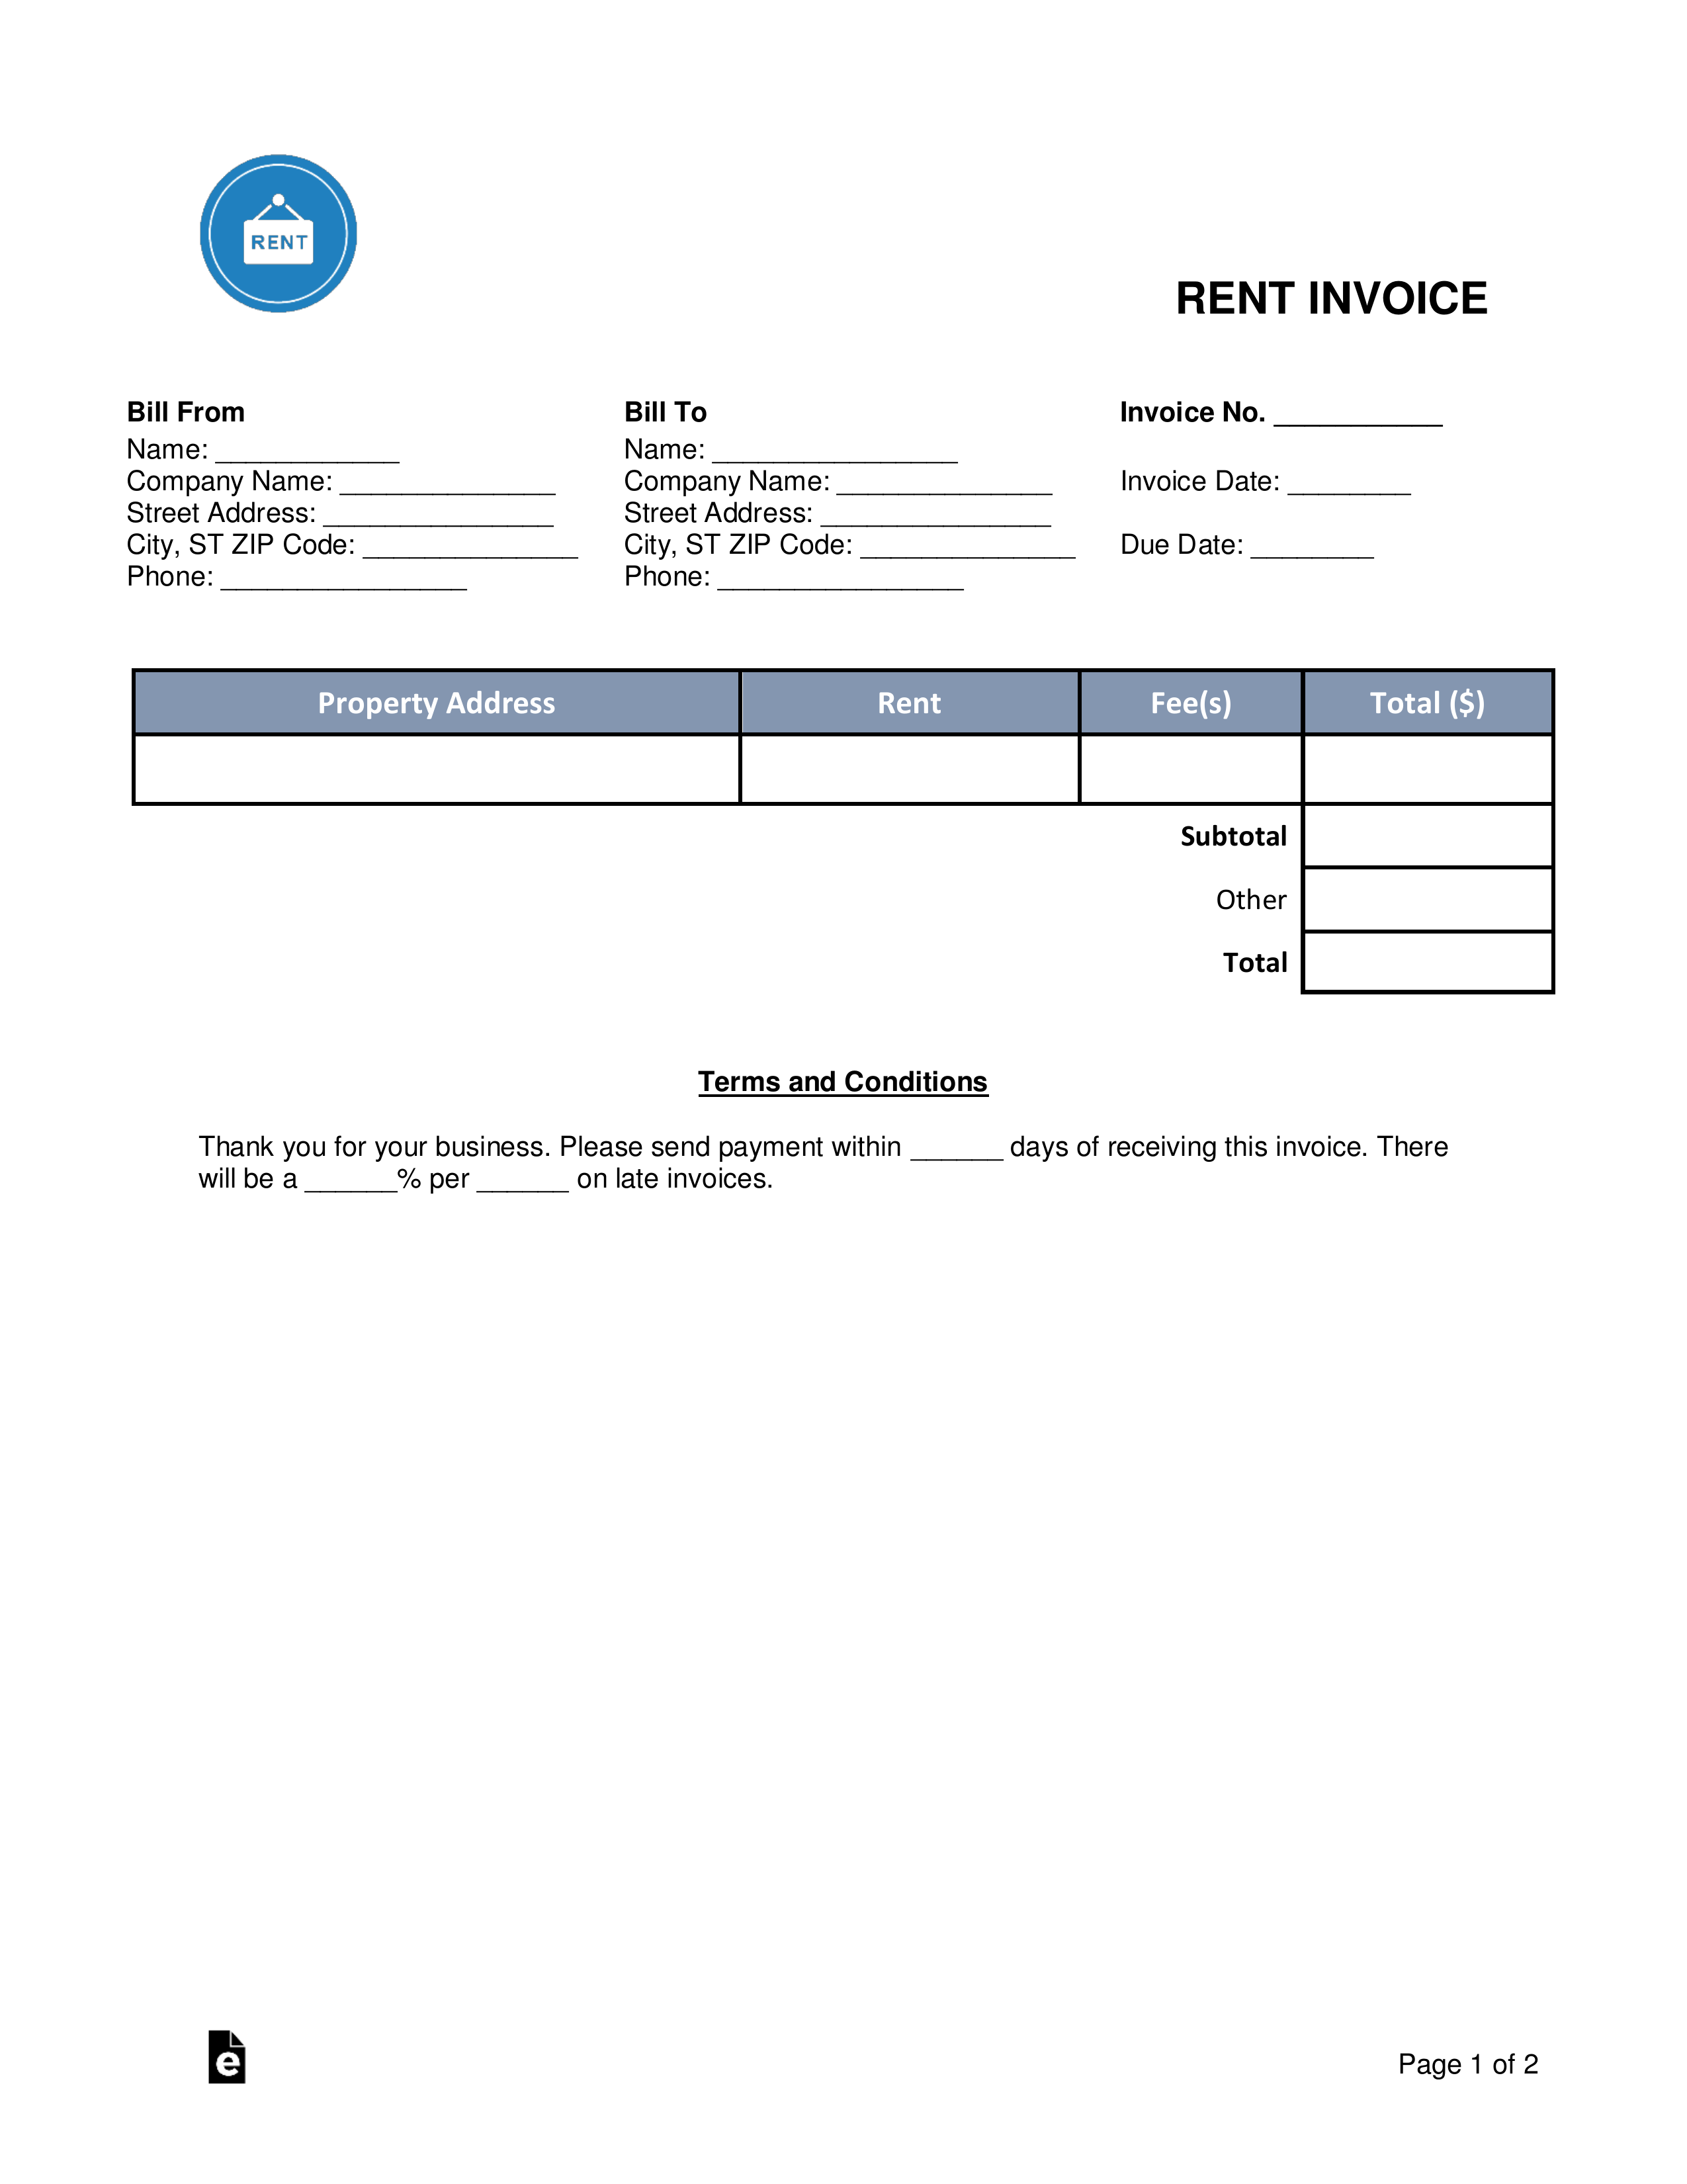 Rent Invoice Template Word